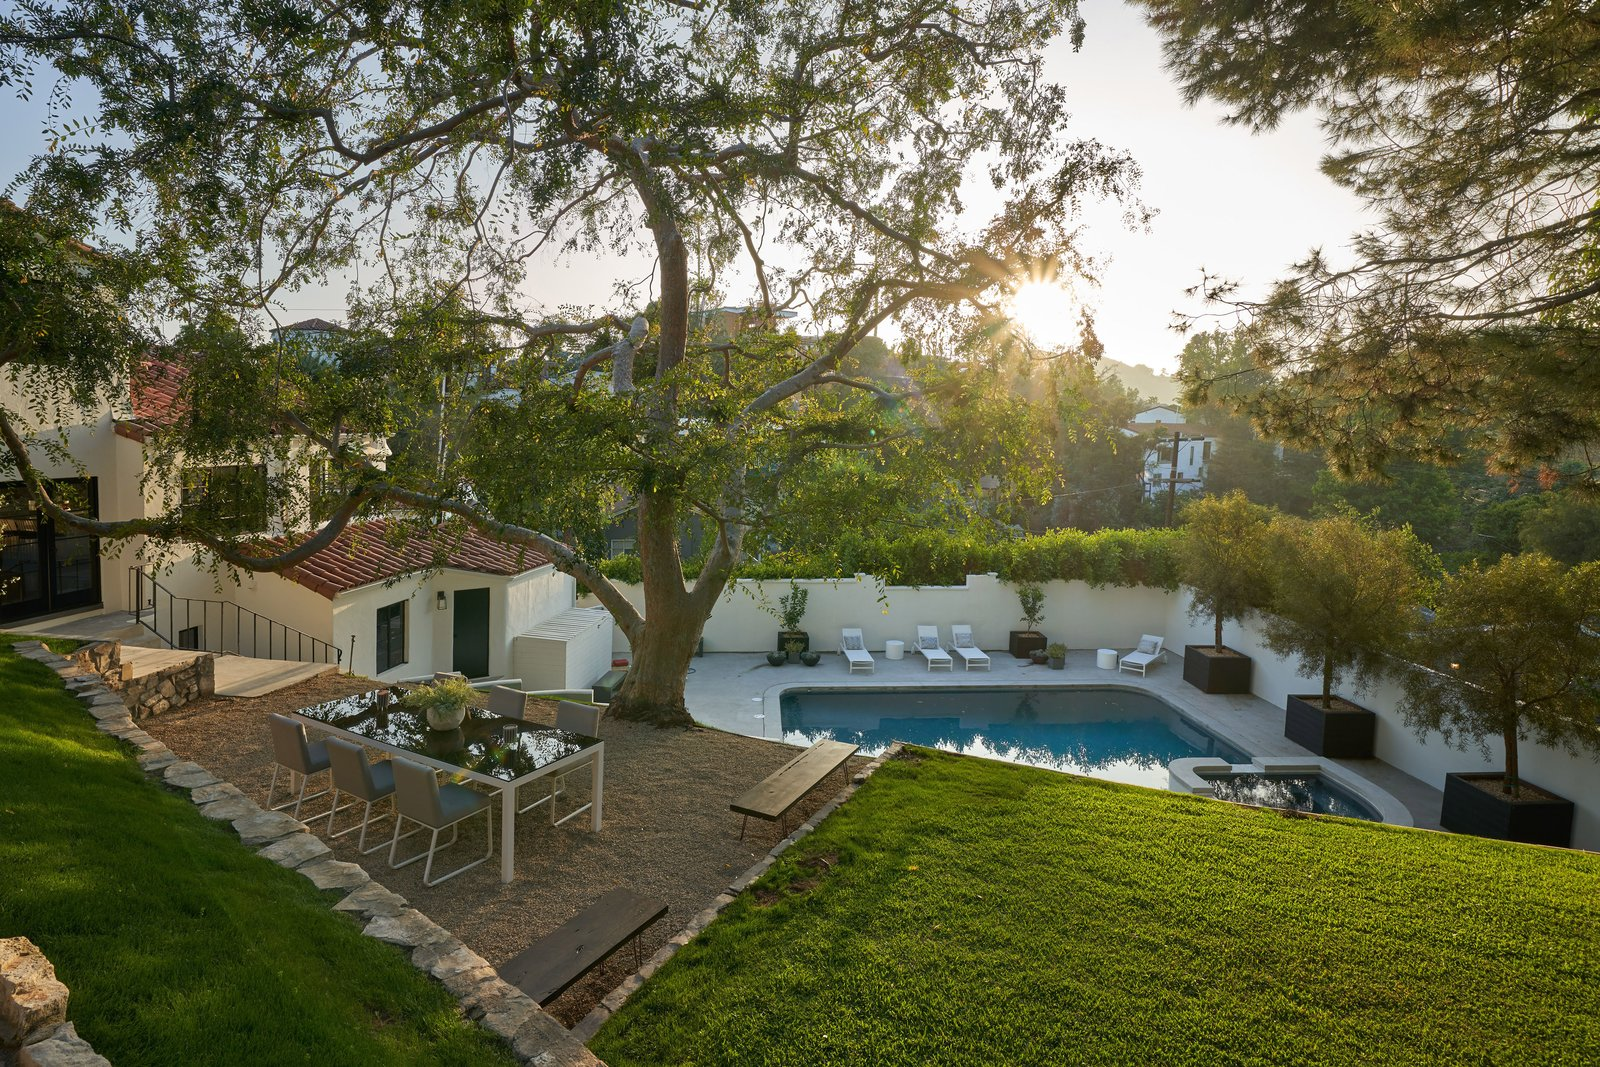 Outdoor, Concrete, Grass, Trees, Large, Large, Back Yard, and Shrubs The Hollywood Hills home sits on a high bluff and features stunning canyon views.    Best Outdoor Concrete Grass Photos from Snatch Up James Dean's Former Hollywood Home For $4M